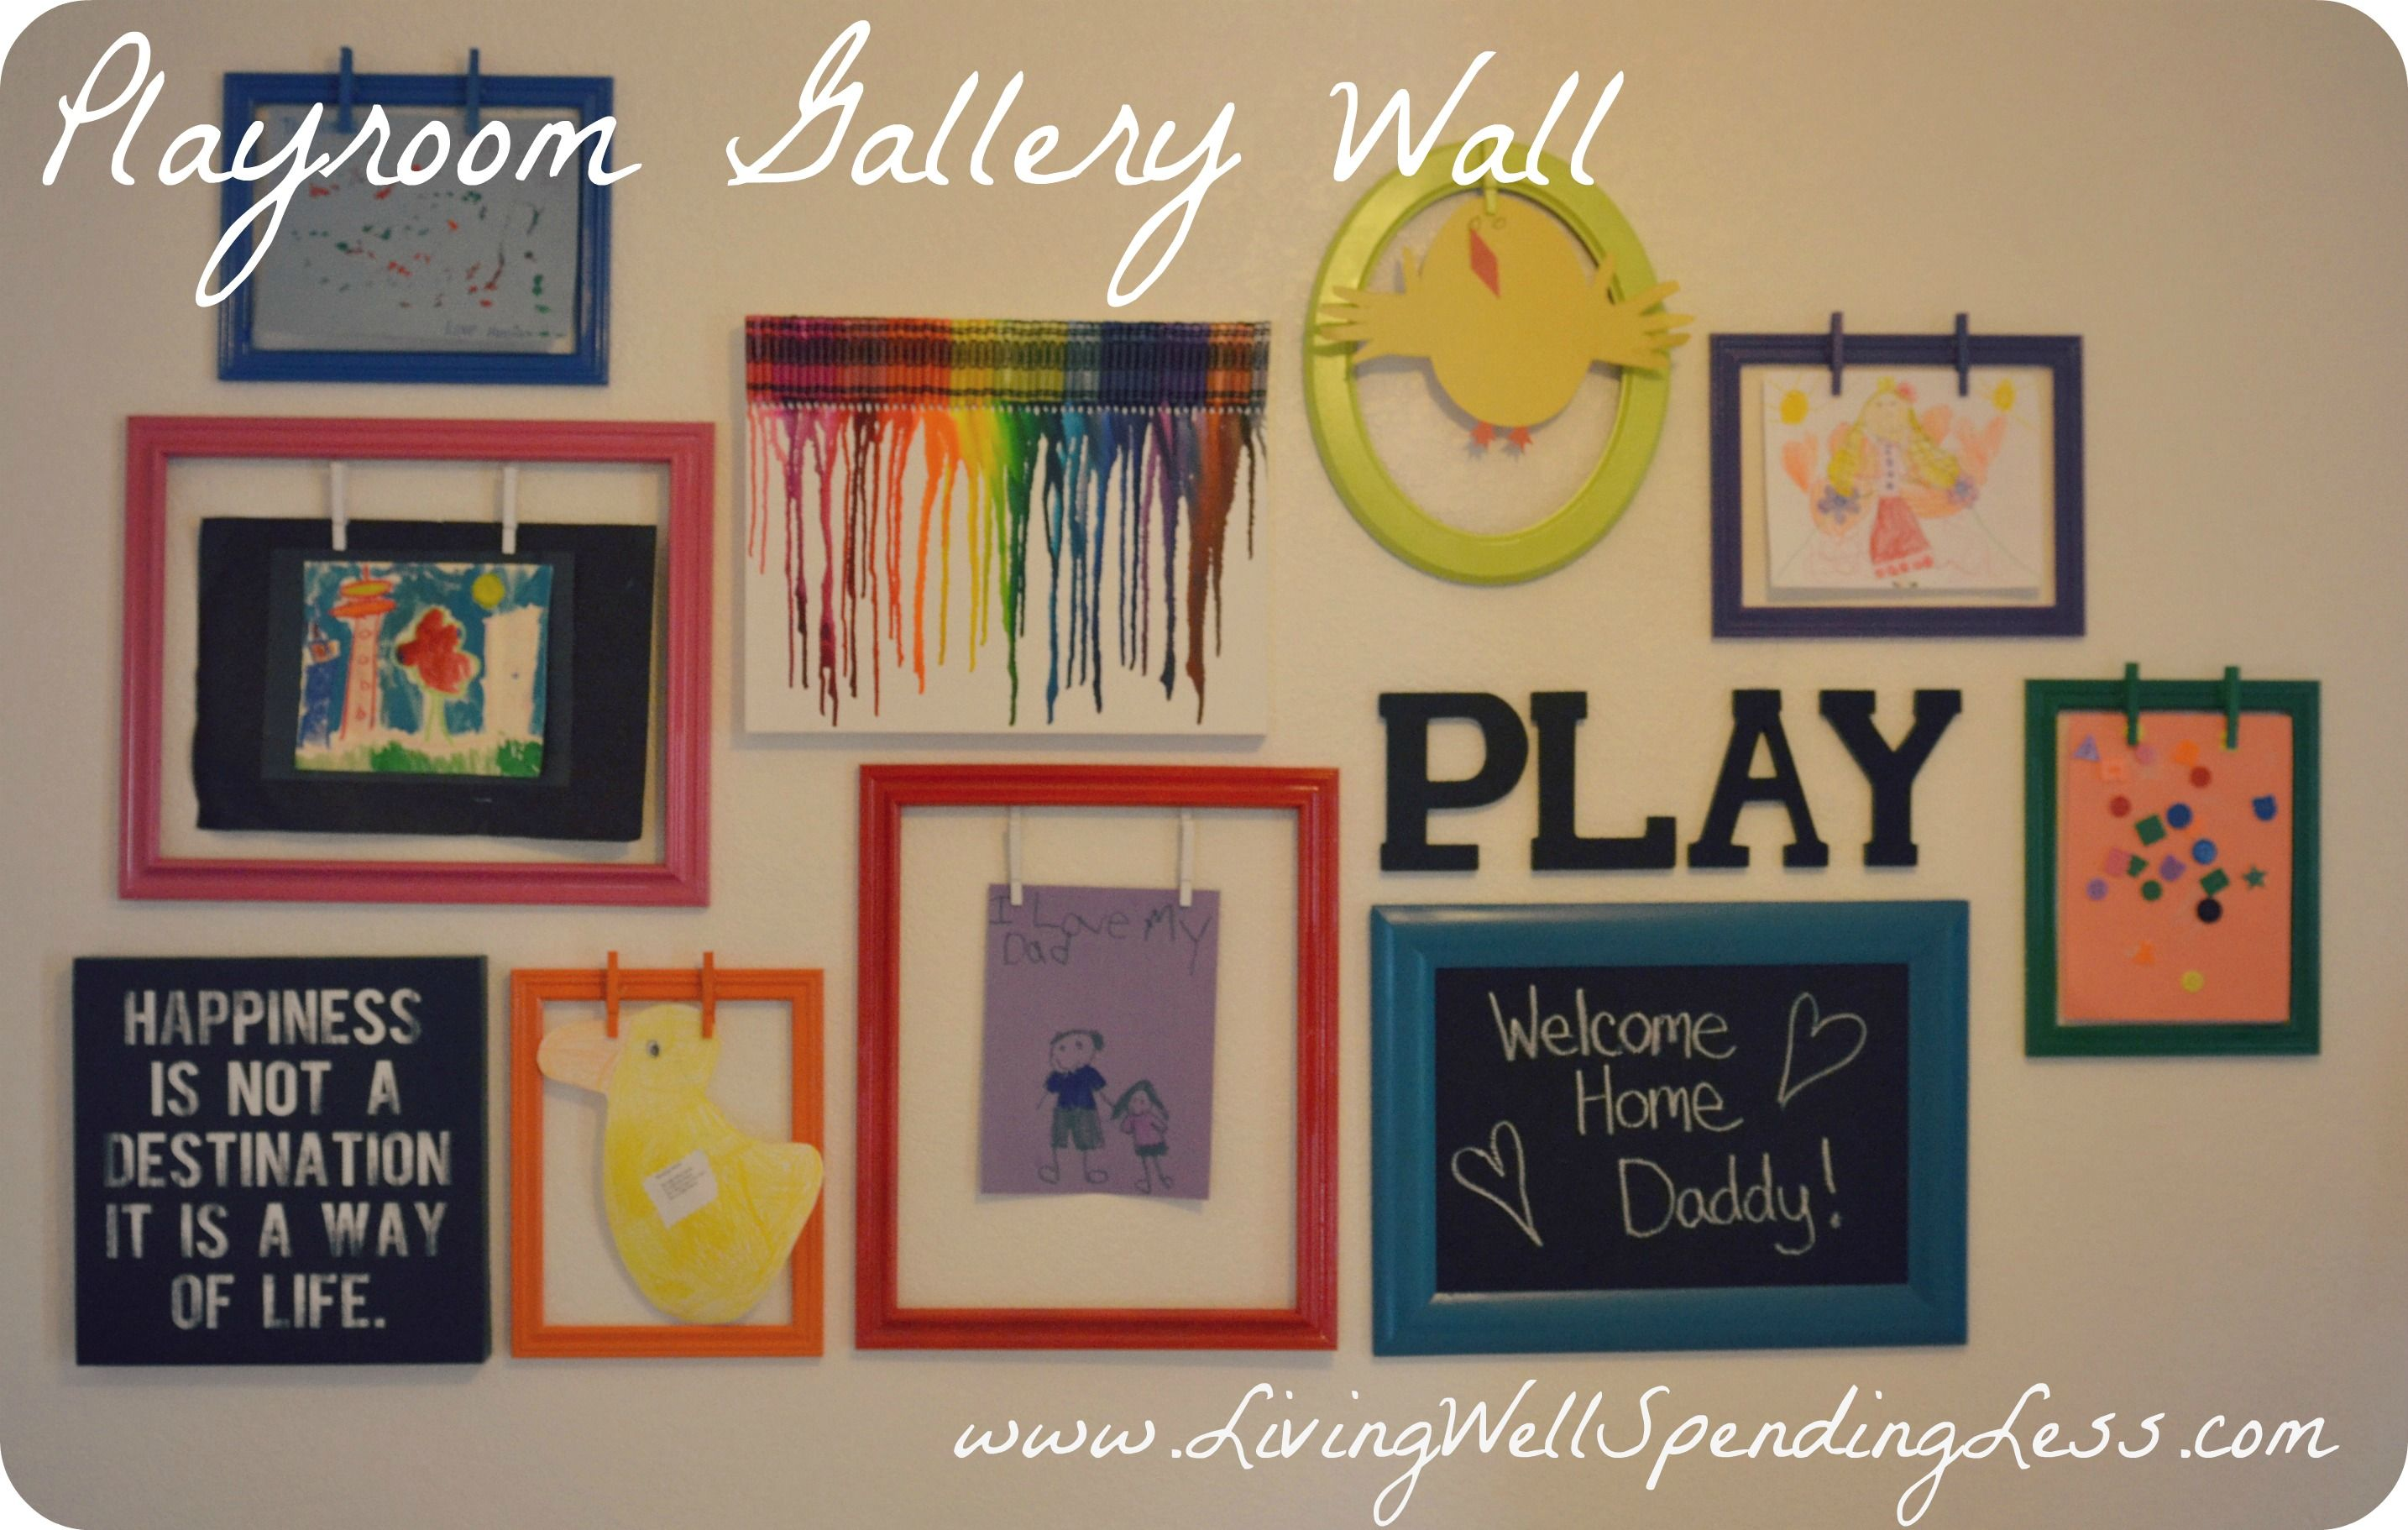 Artwork Ideas For Family Room Part - 22: 13 Best Teen Playroom Ideas Images On Pinterest | Playroom Ideas, Room And  Home